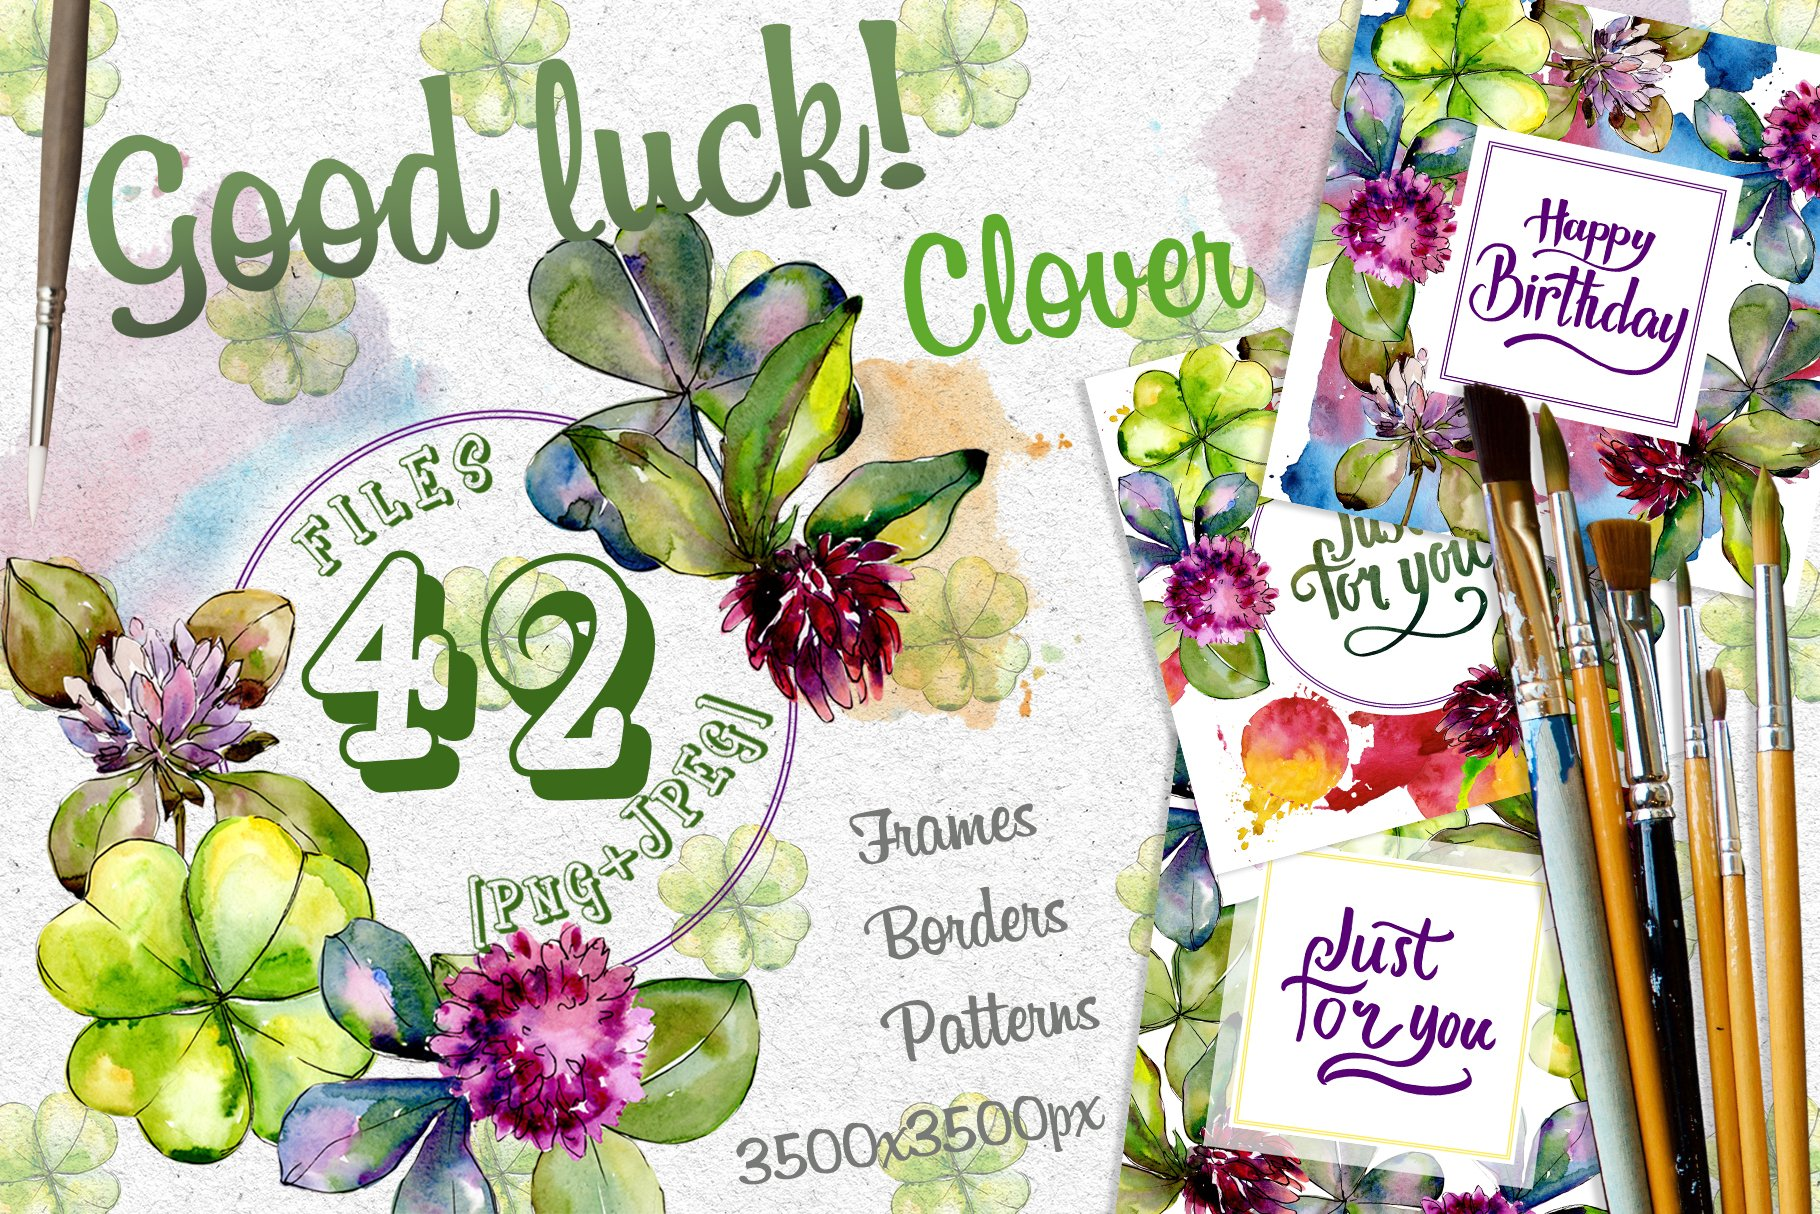 Clower PNG watercolor set - $5 ONLY - cover 1 1